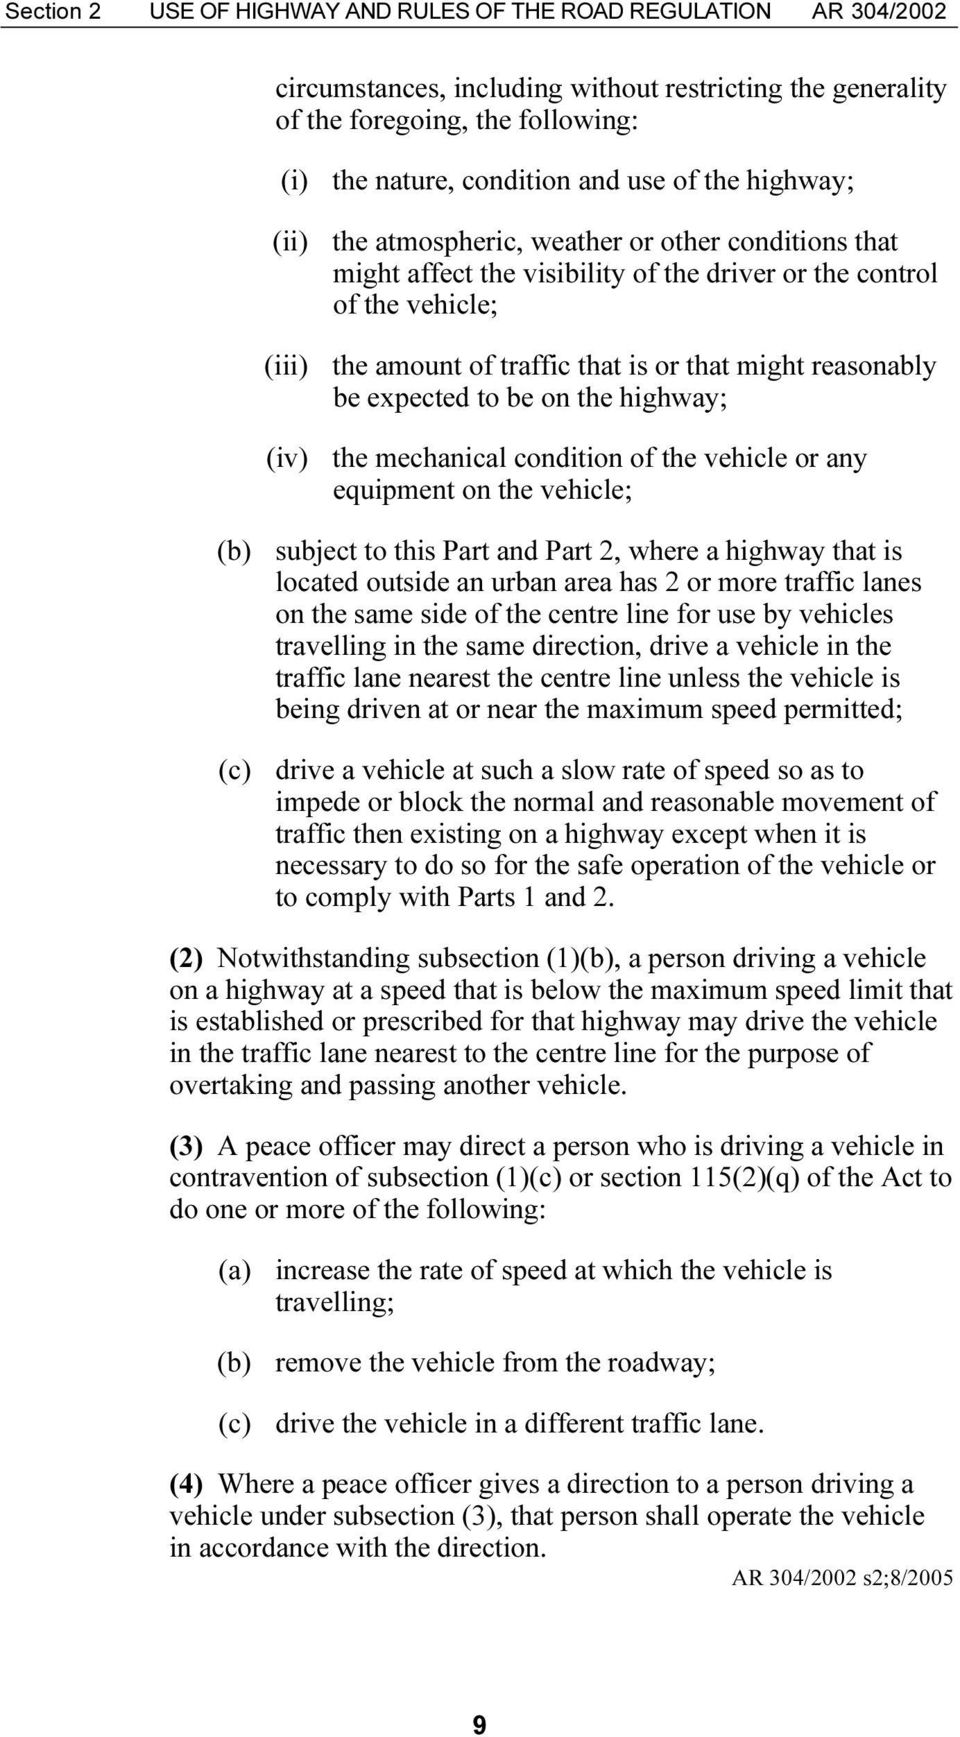 reasonably be expected to be on the highway; (iv) the mechanical condition of the vehicle or any equipment on the vehicle; (b) subject to this Part and Part 2, where a highway that is located outside